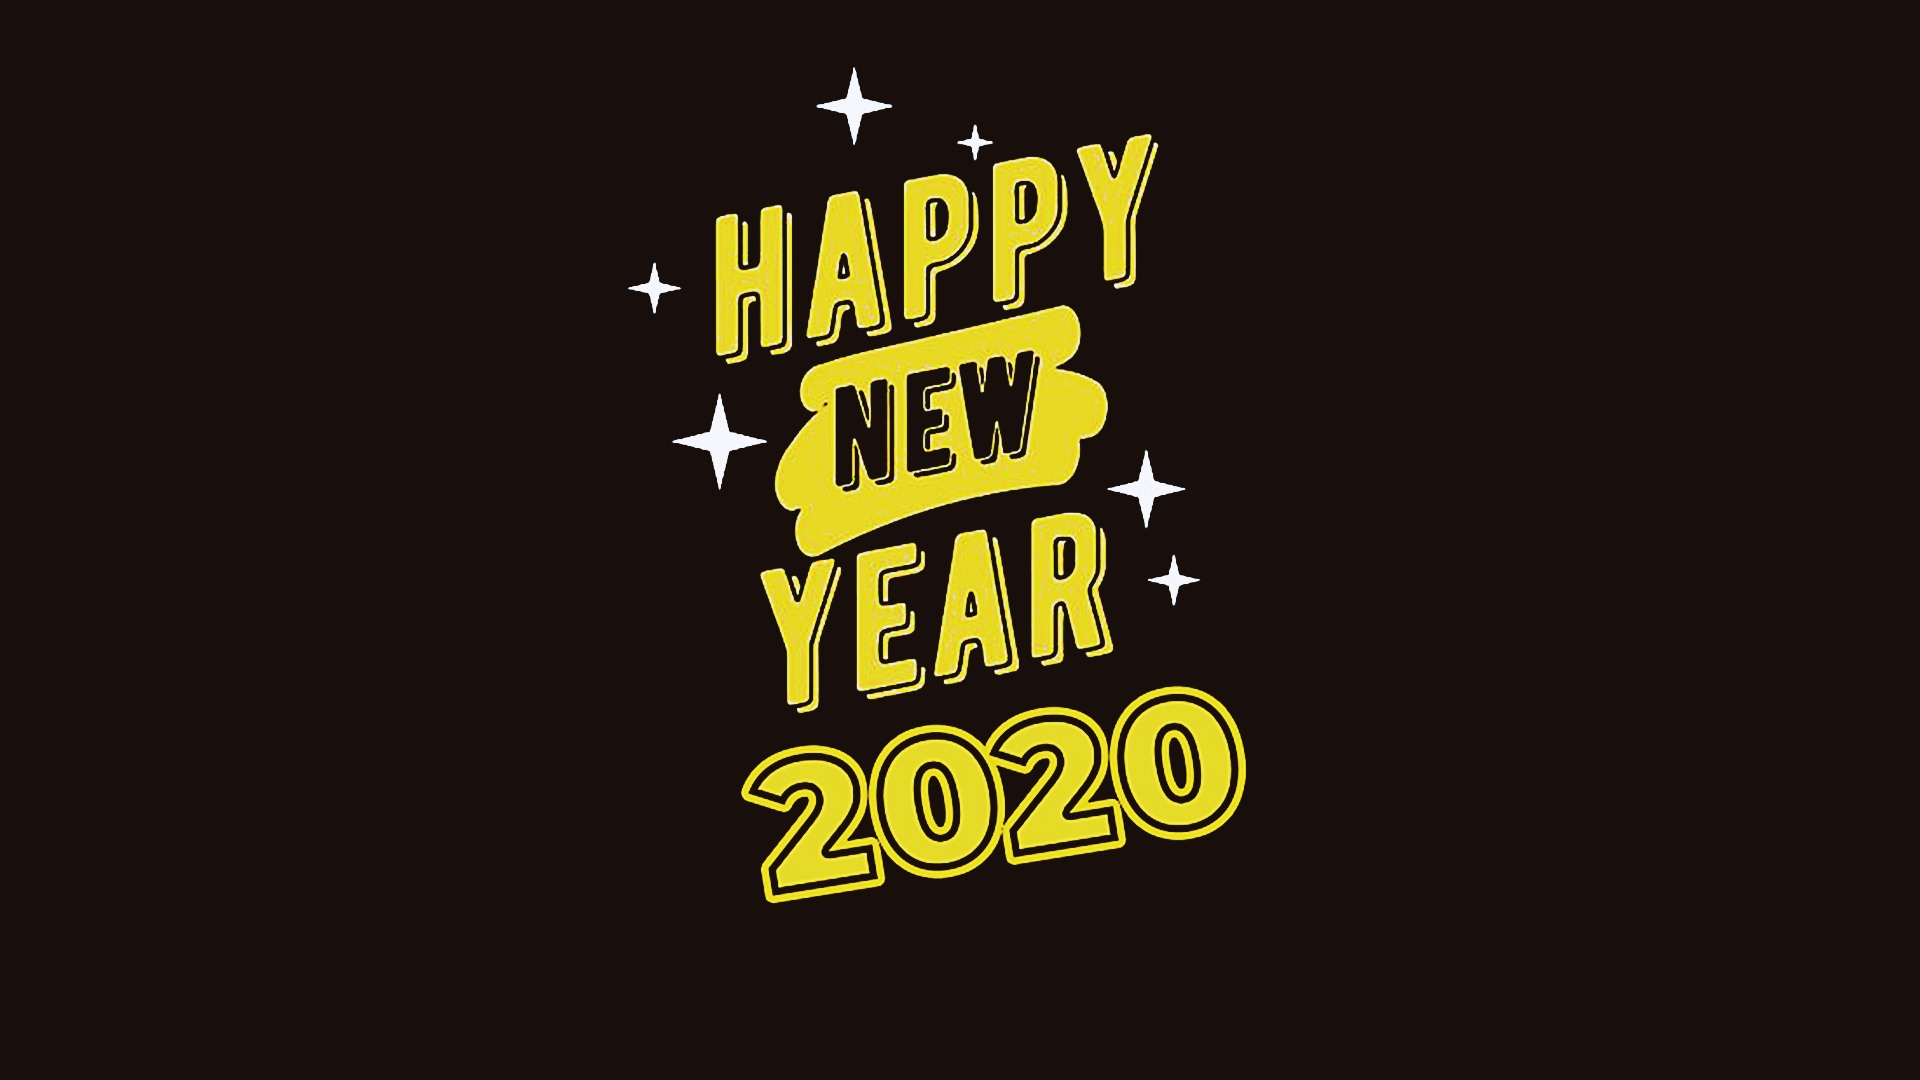 Happy New Year 2020 Wallpapers Full HD 45556   Baltana 1920x1080